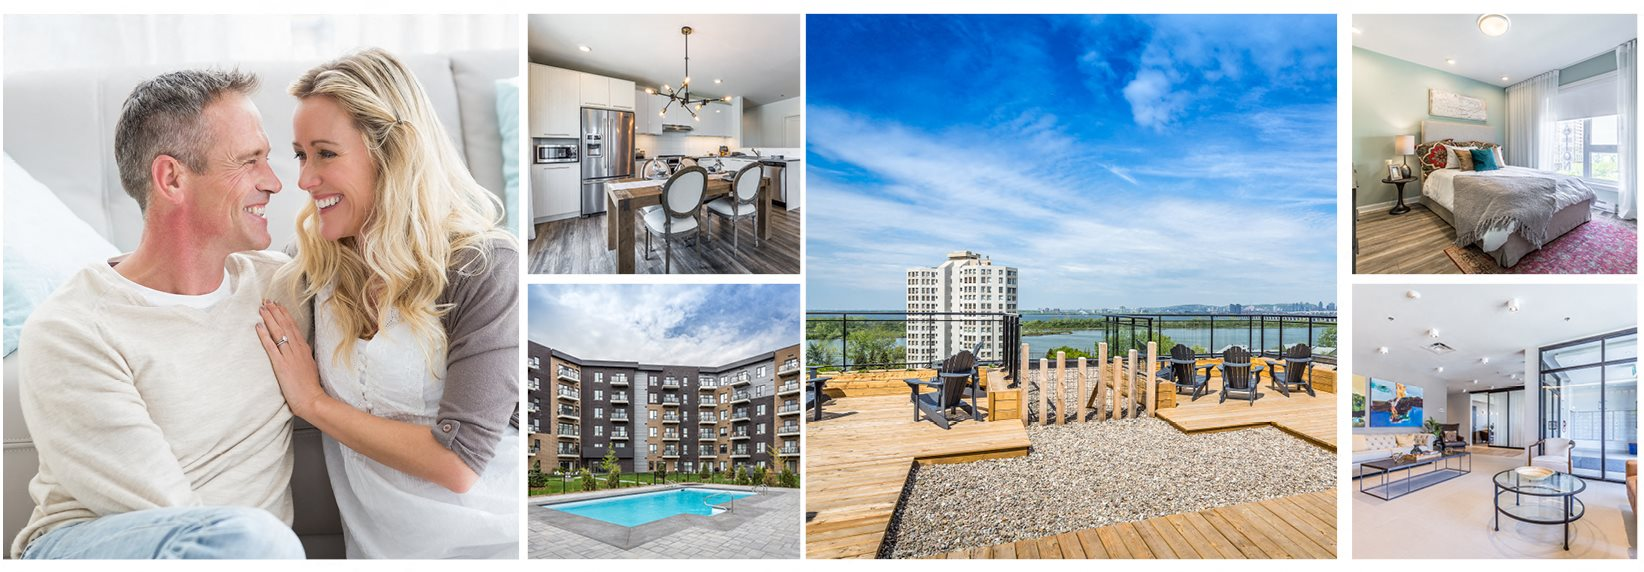 Collage of interior and exterior photos of Le Saint-Laurent Apartments